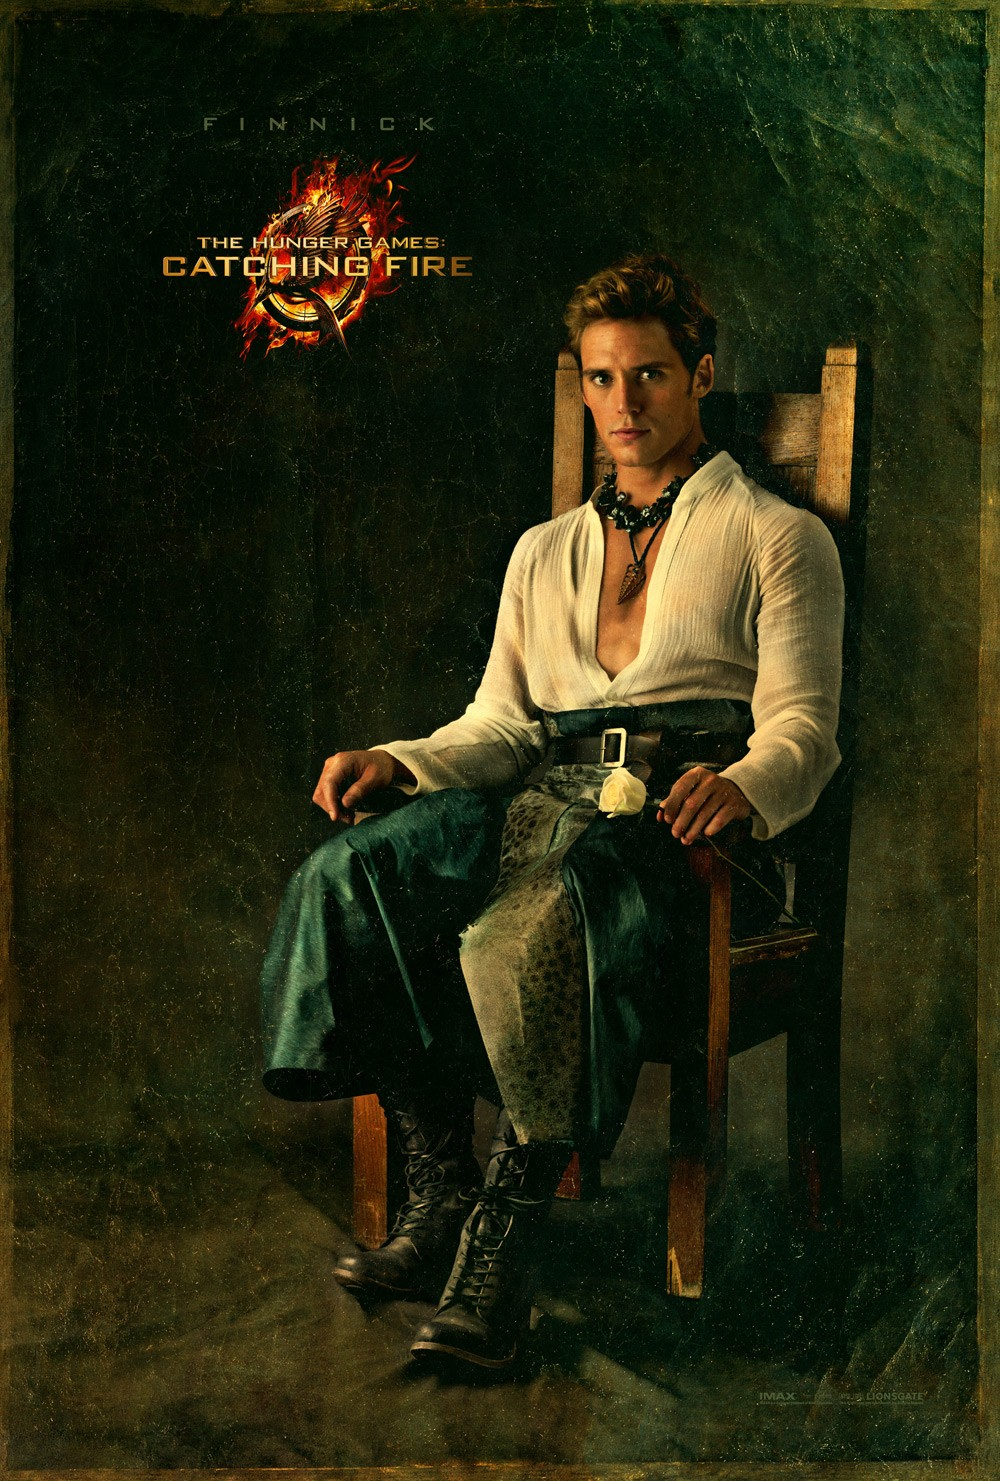 The Hunger Games Catching Fire - Poster - 013 - Finnick